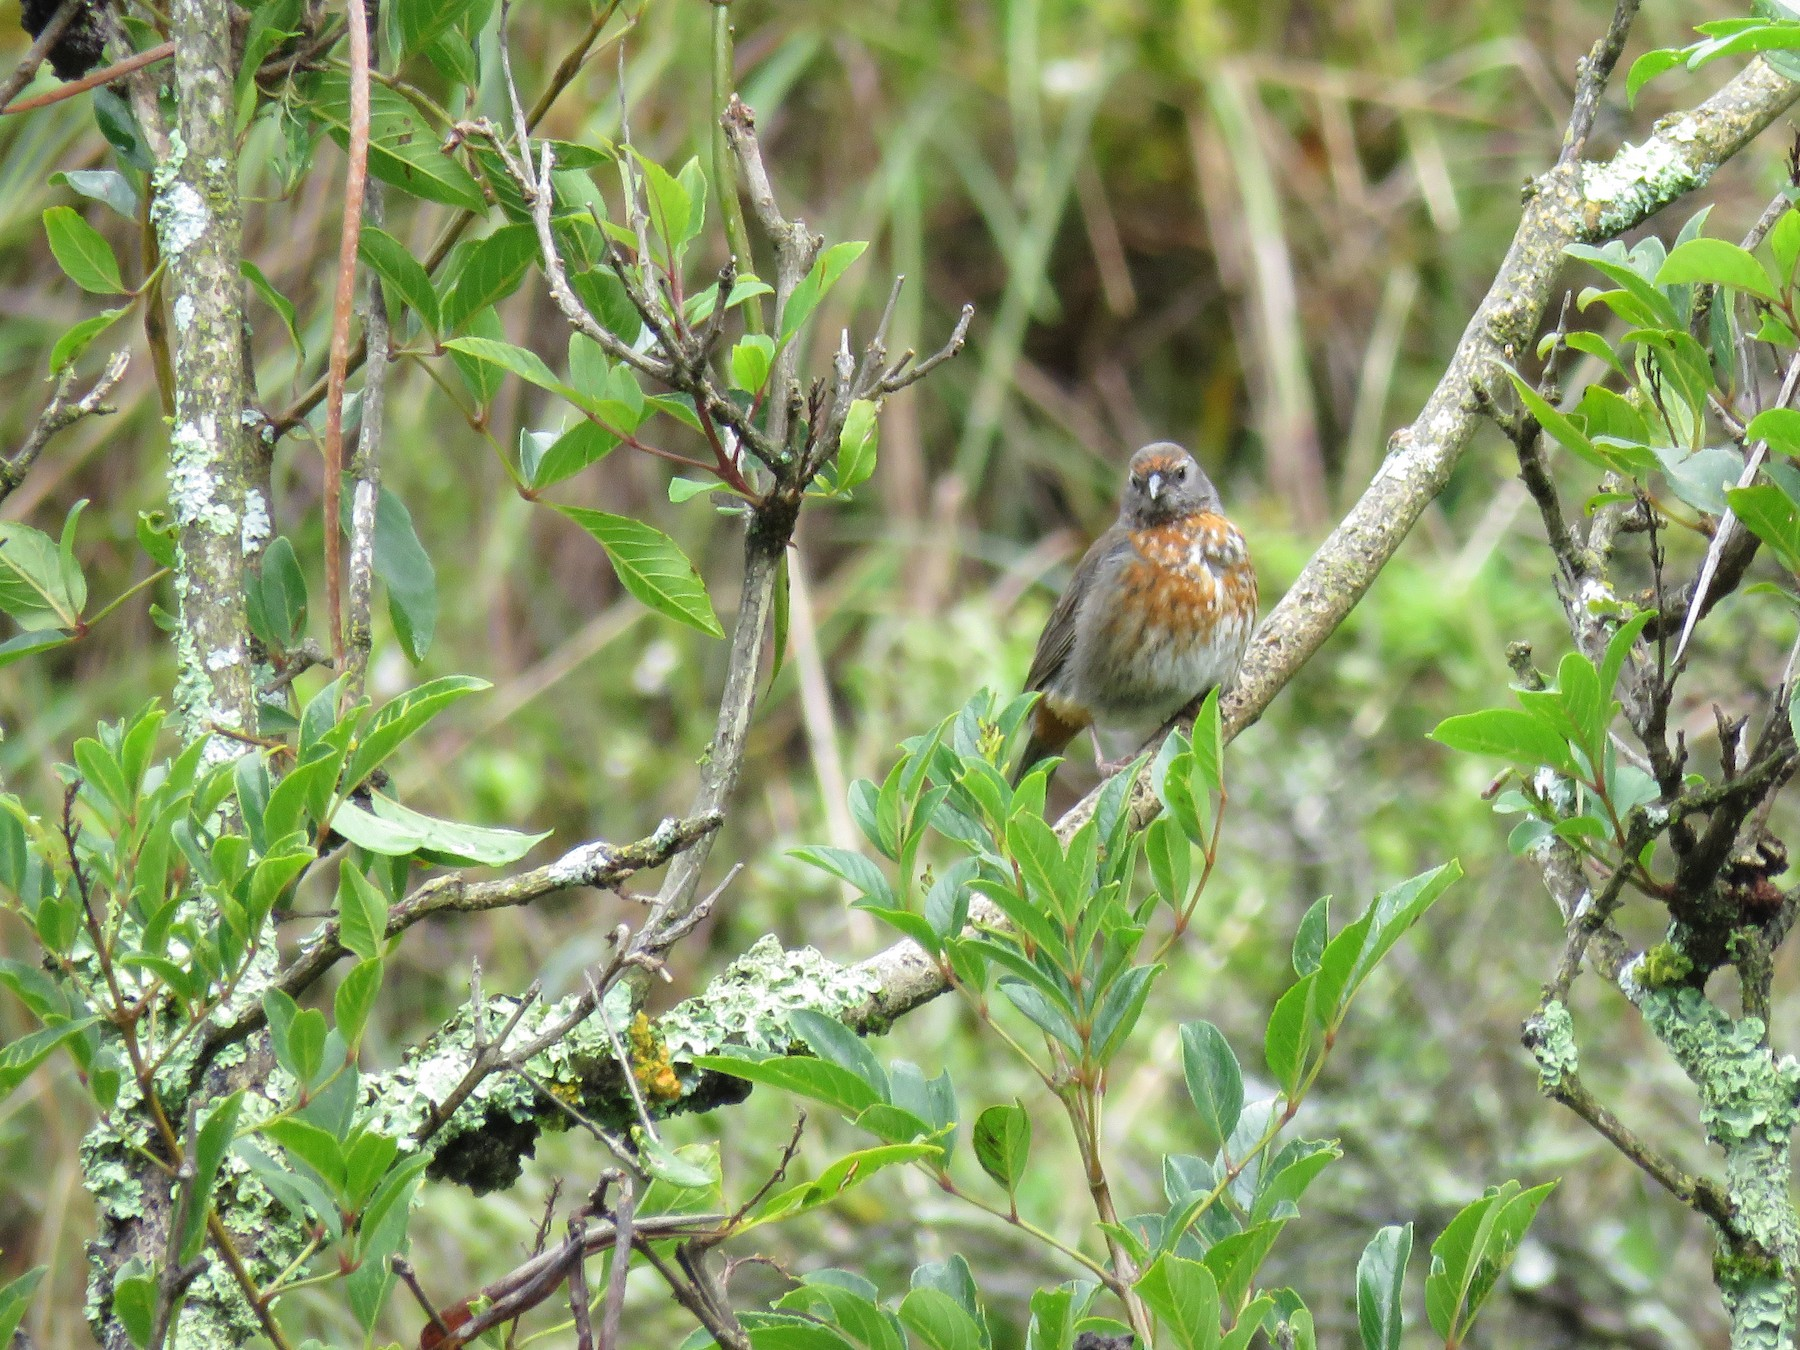 Rufous-breasted Warbling-Finch - Manuel Roncal-Rabanal